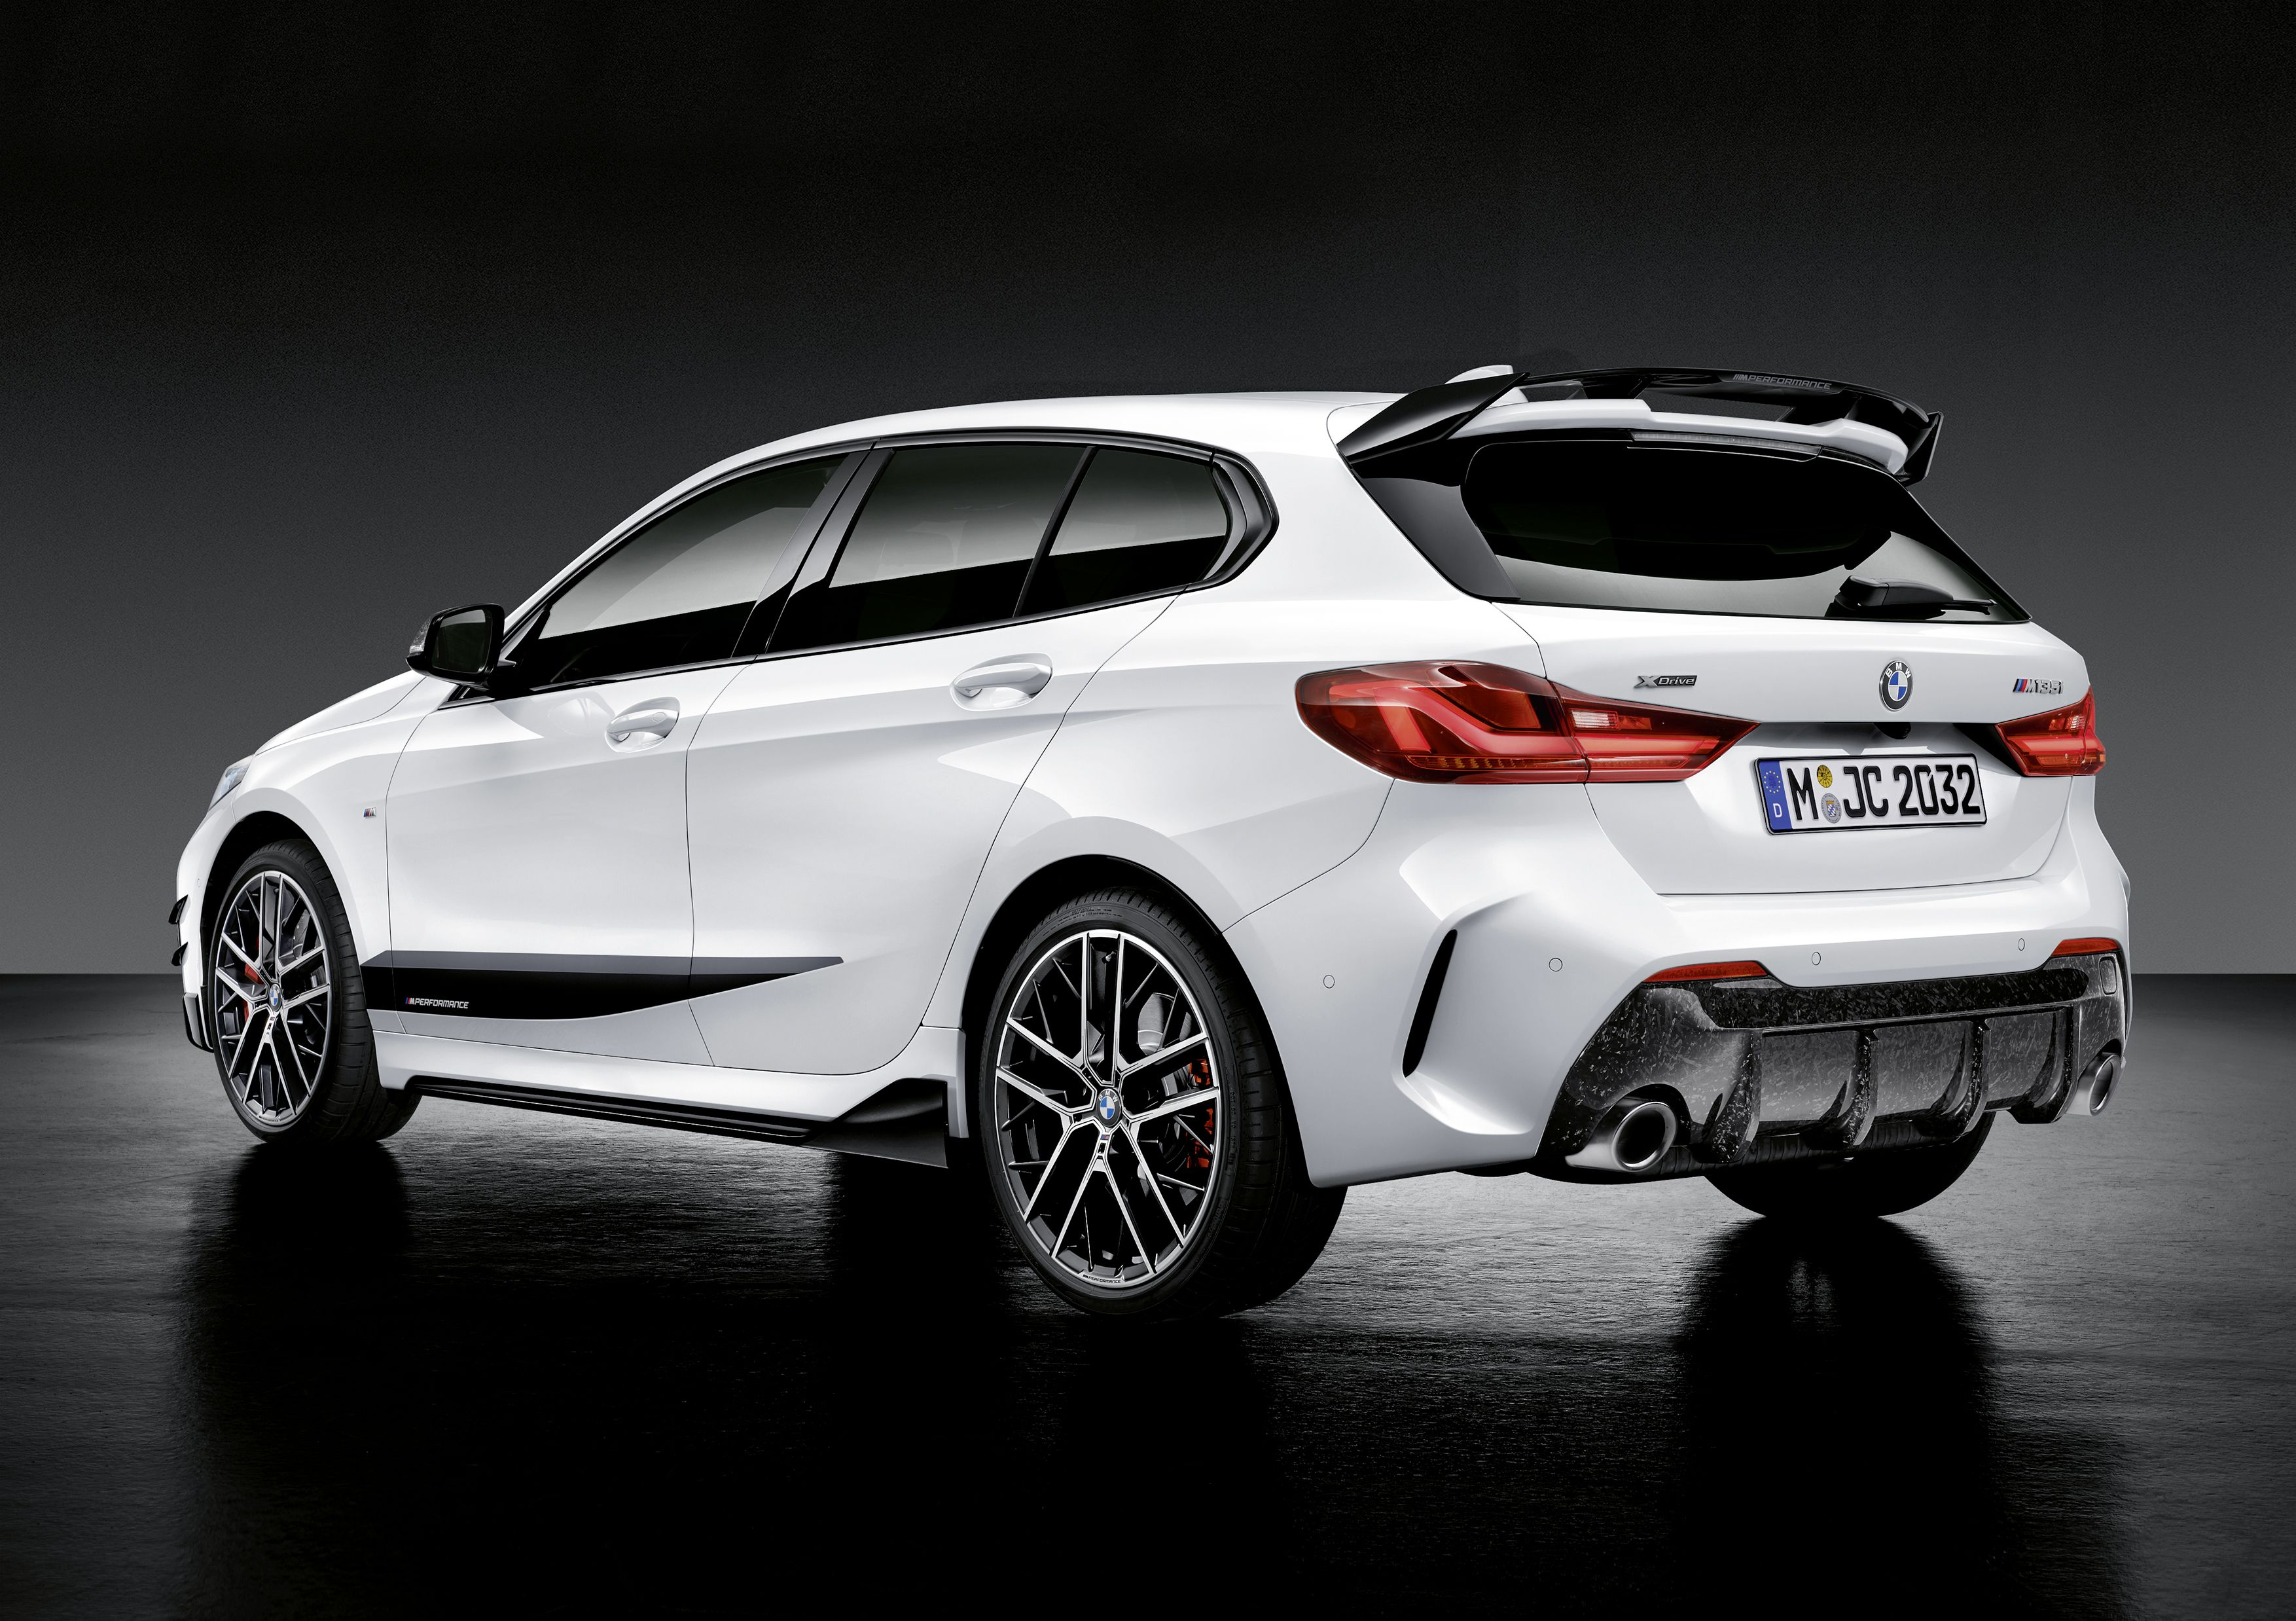 2020 Bmw 1 Series With M Performance Parts Avec Images Voiture